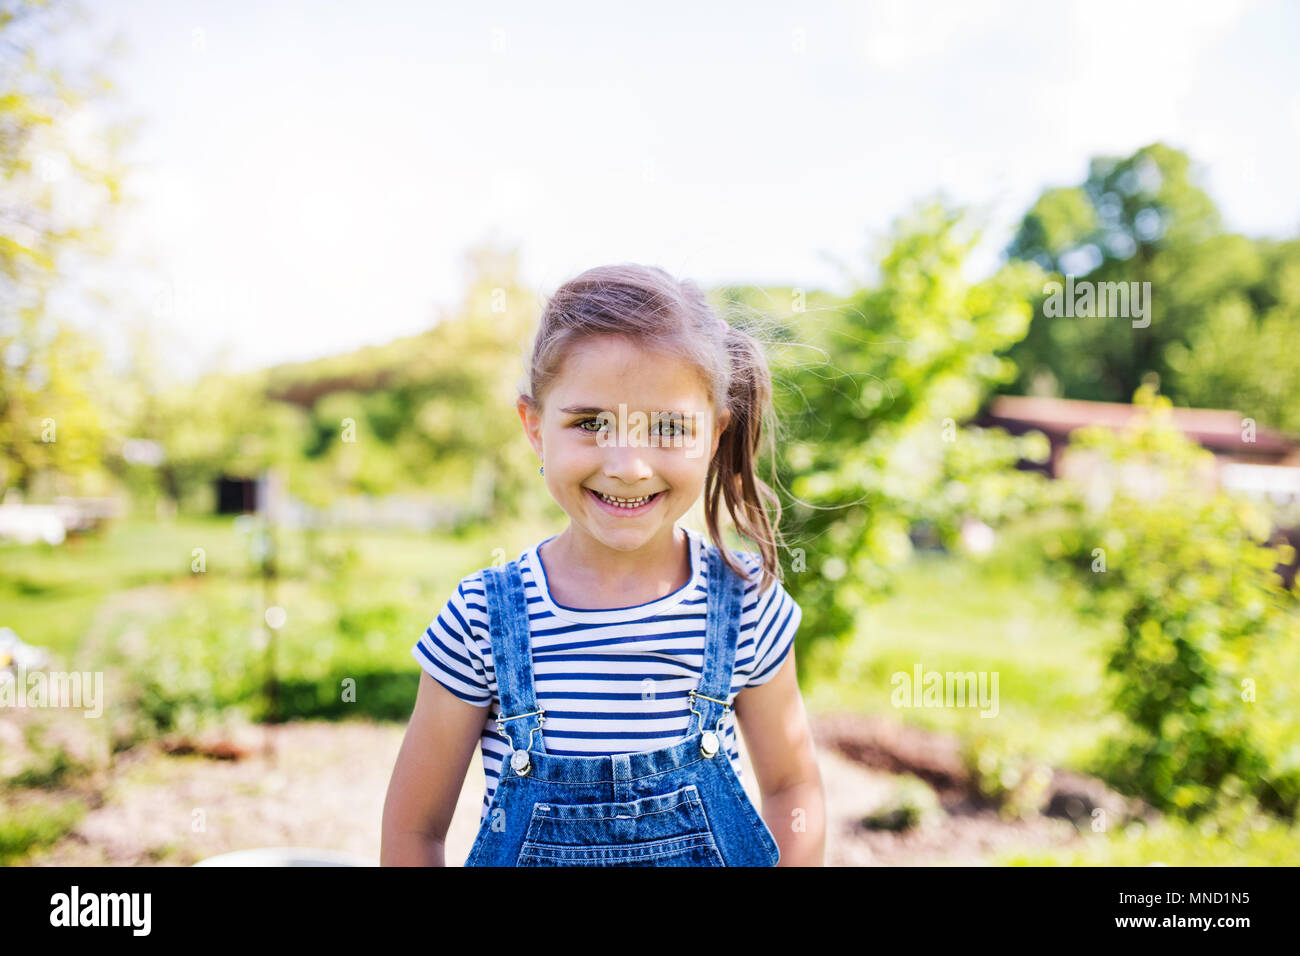 A portrait of a small girl in the garden in spring nature. - Stock Image